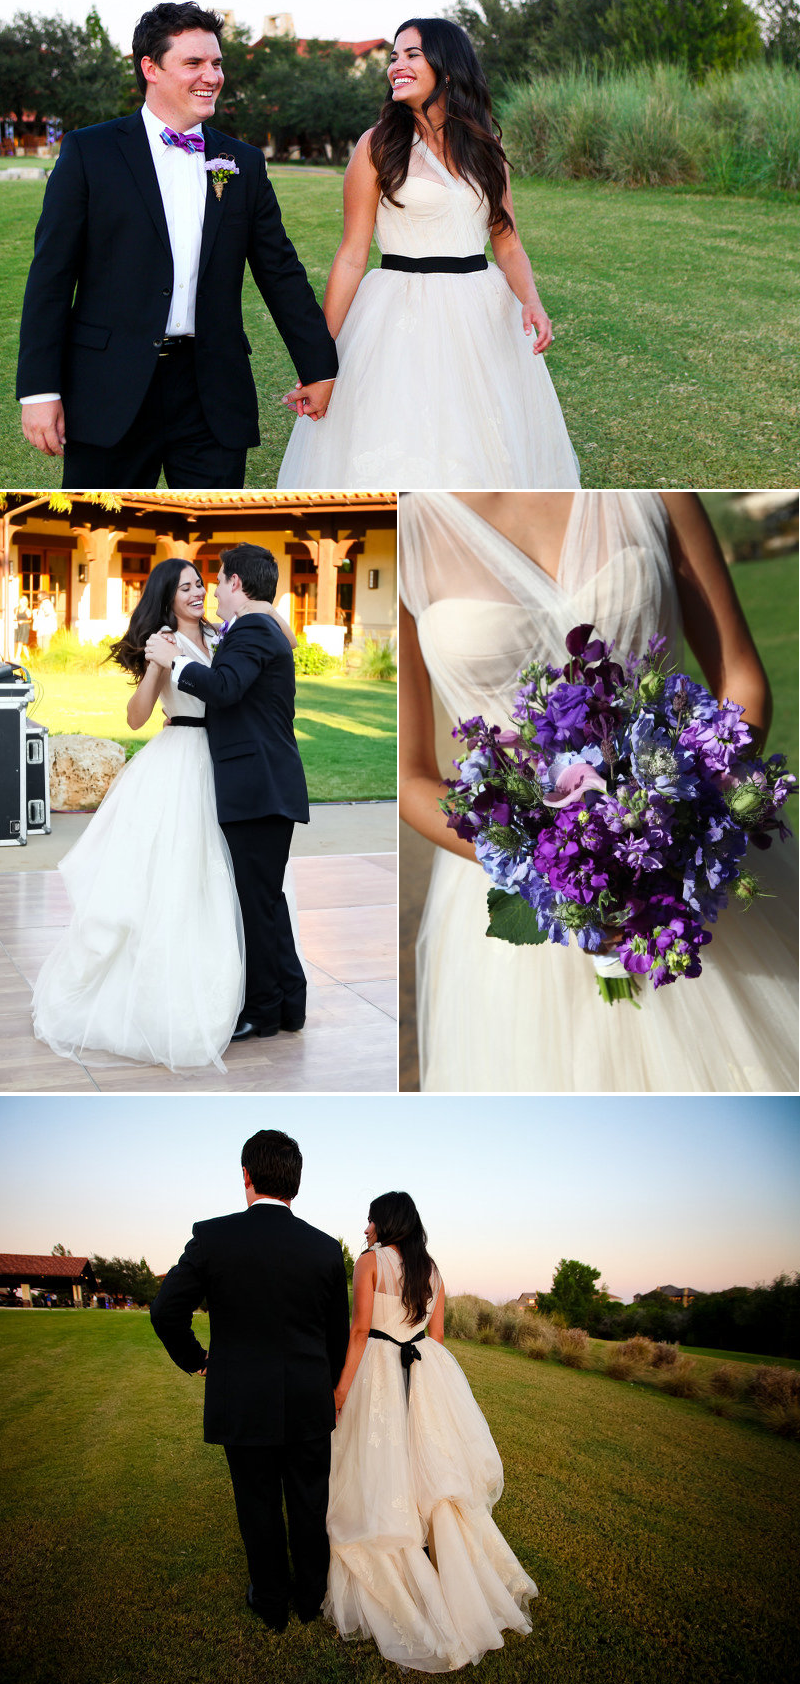 Vera-wang-wedding-dress-which-bride-wore-it-best-4.original